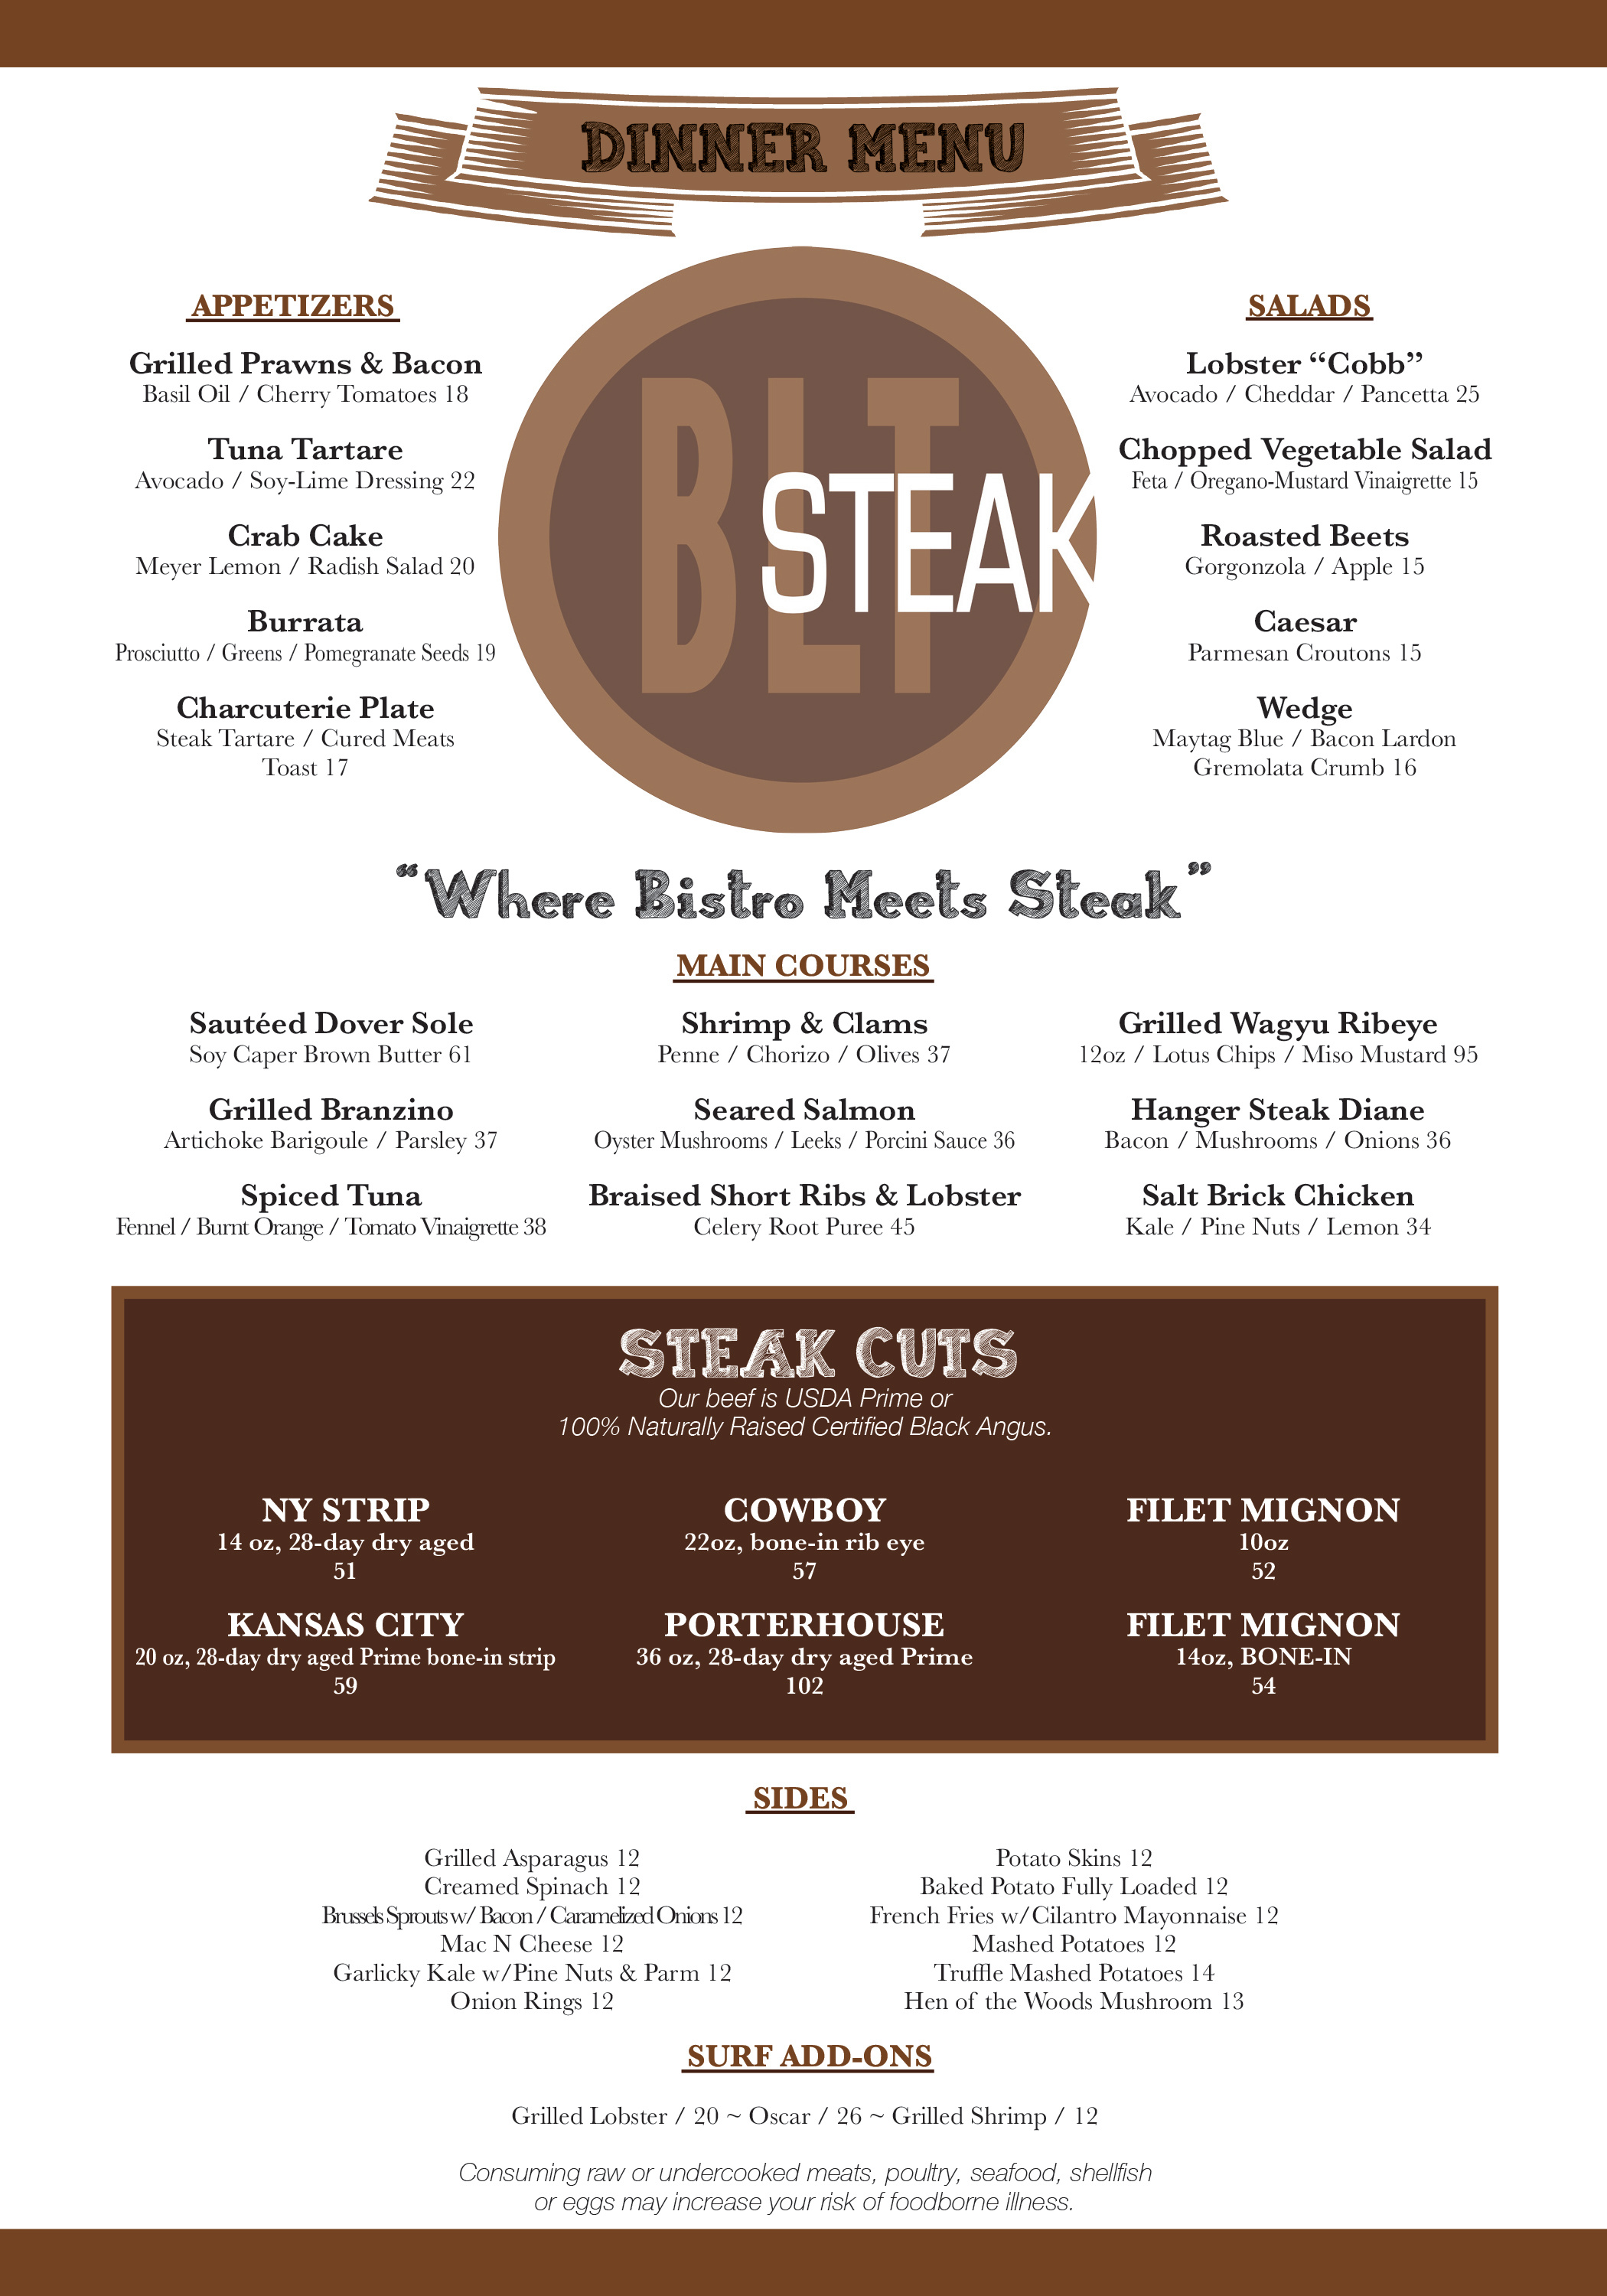 BLT Steak Menu